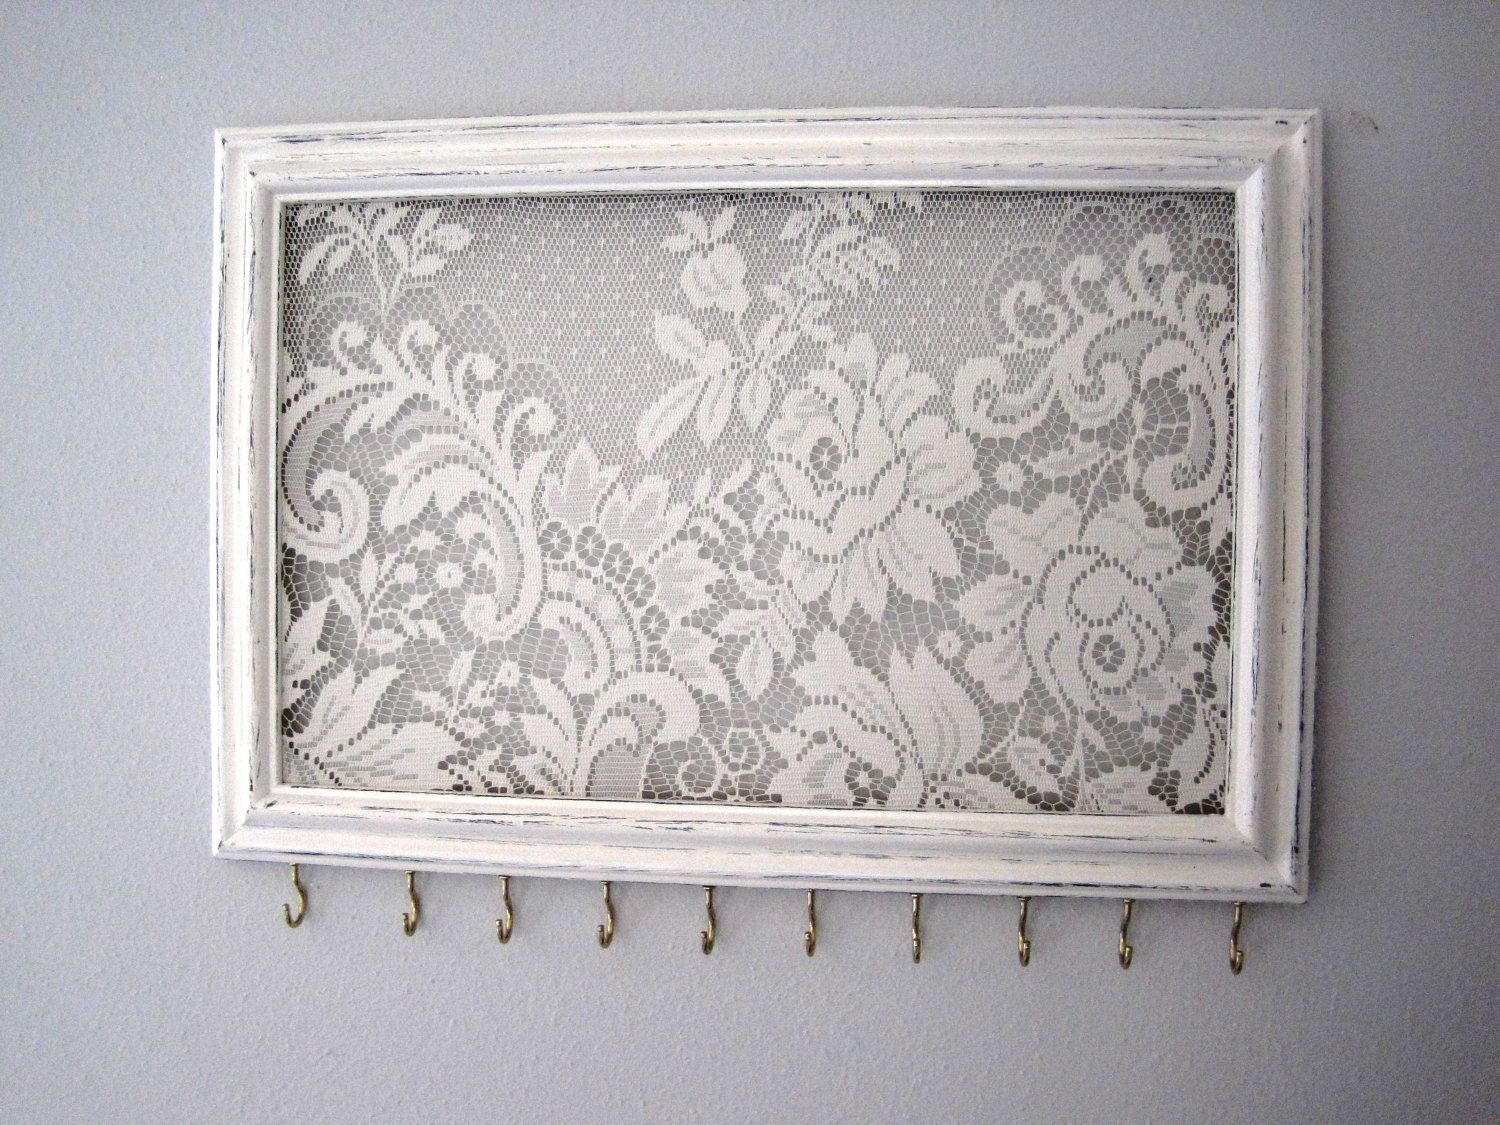 Jewelry Hanger Accessory Organizer White Flower Lace Hooks